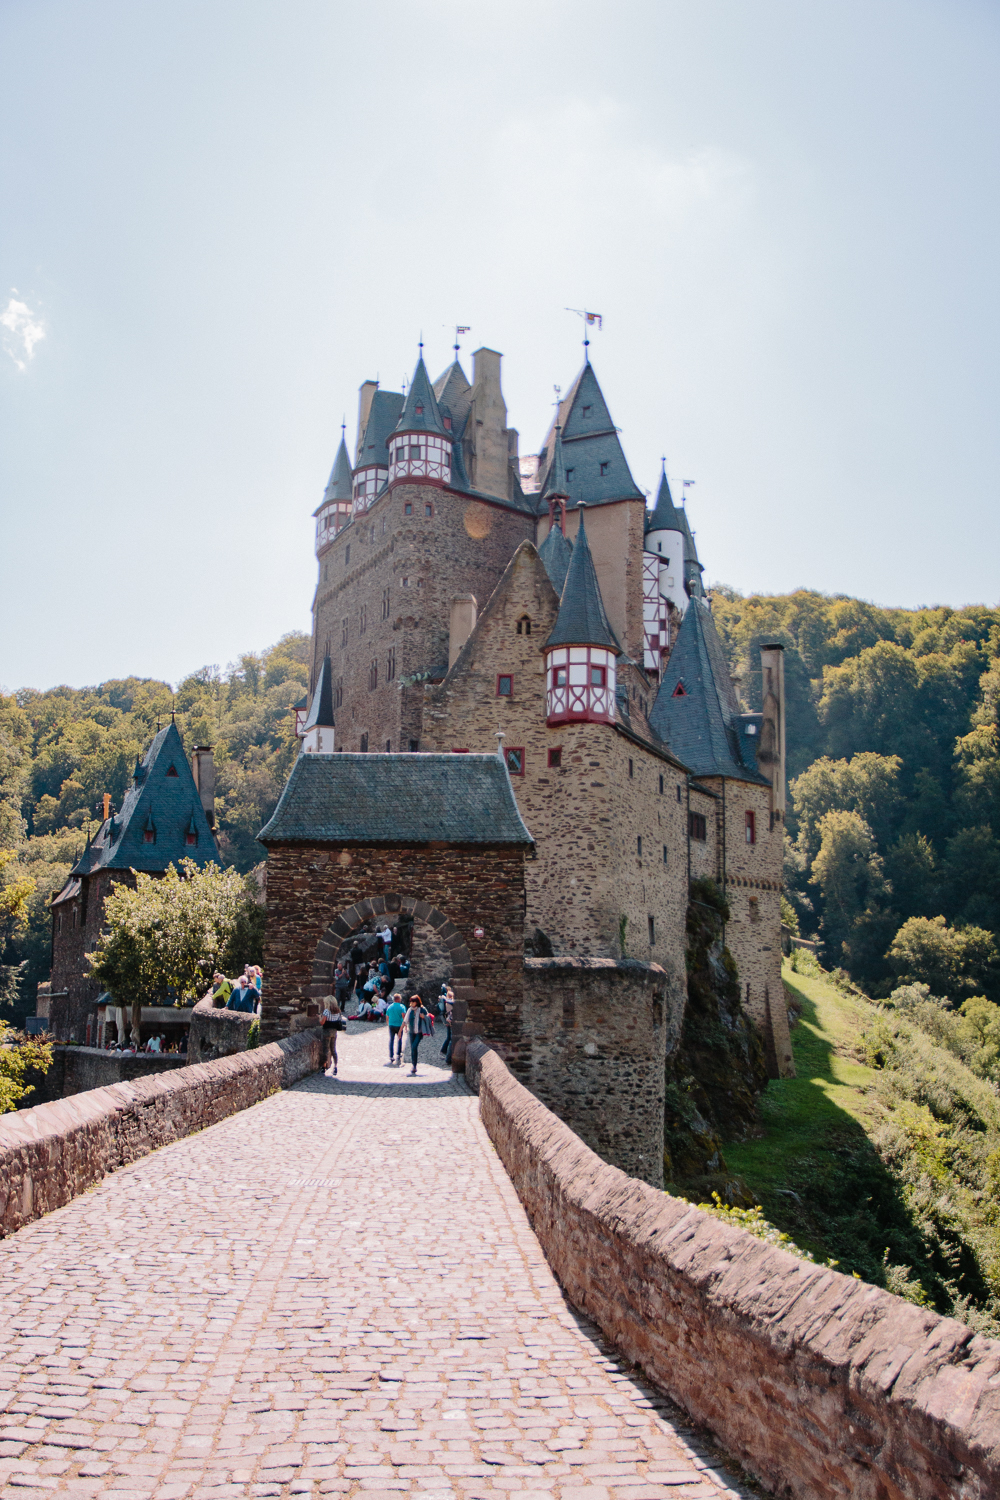 Views over Burg Eltz Castle